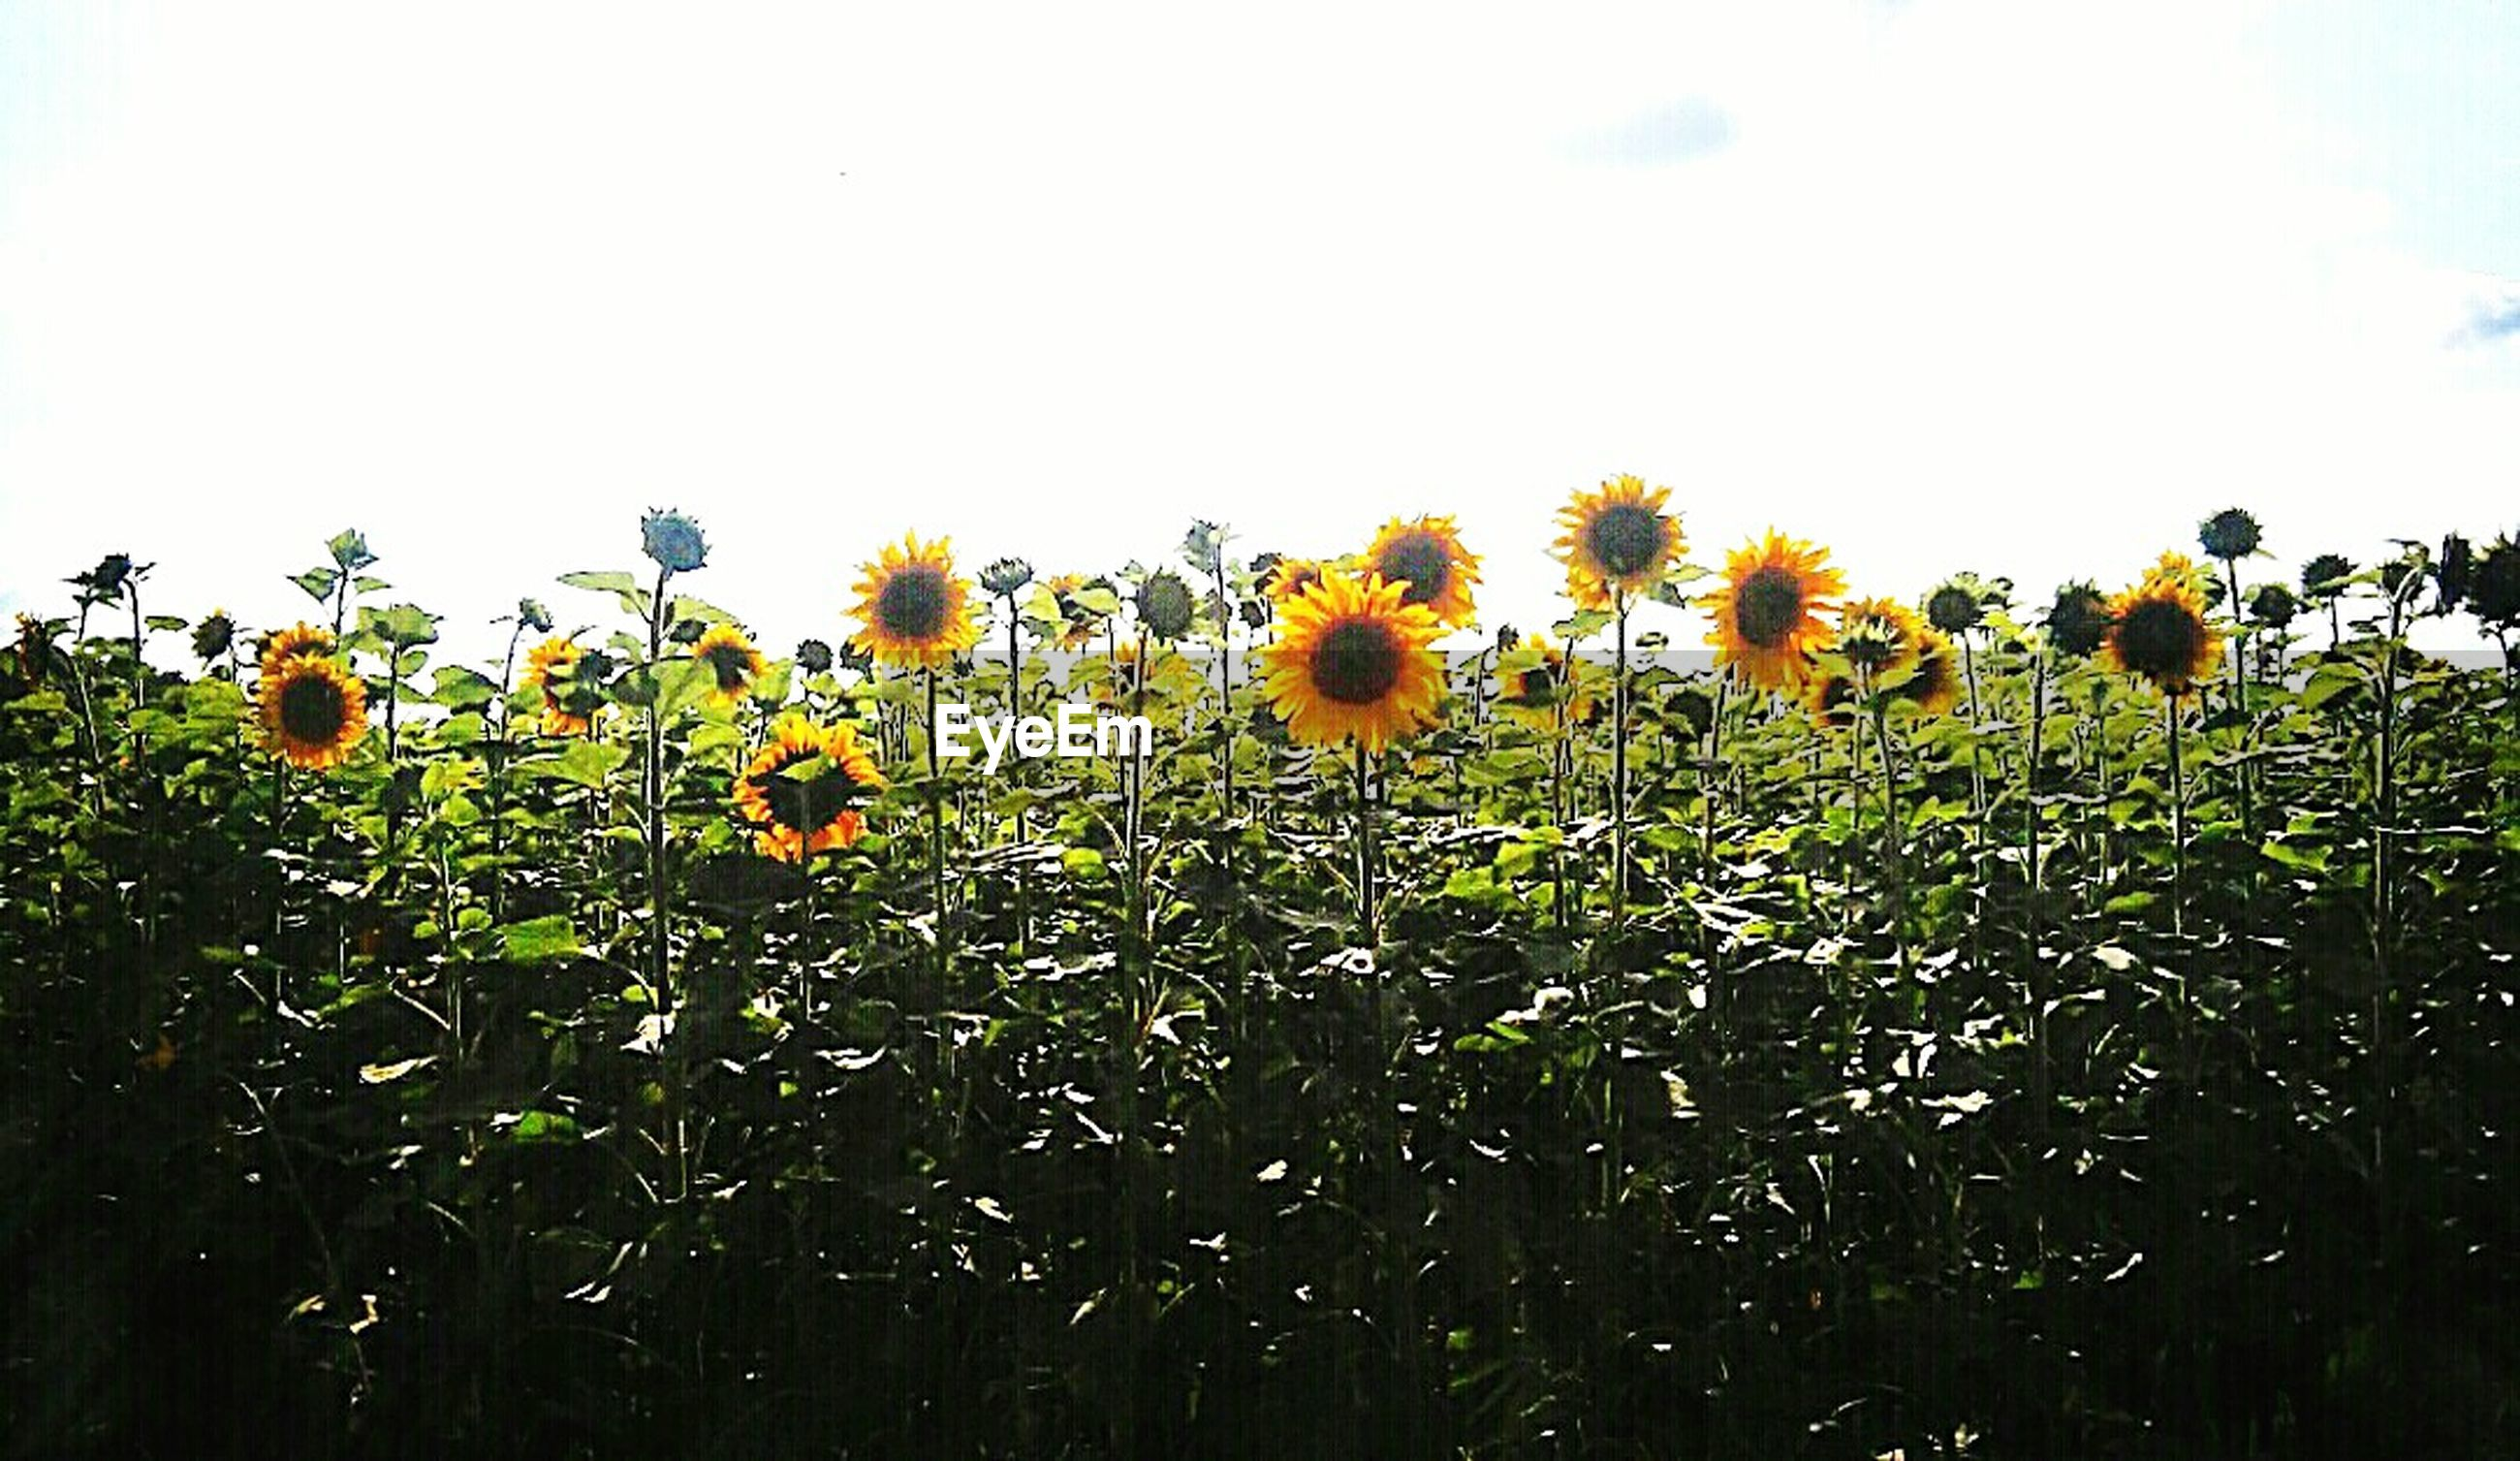 flower, growth, freshness, yellow, clear sky, beauty in nature, field, fragility, nature, plant, copy space, agriculture, abundance, blooming, sky, rural scene, petal, sunflower, tranquility, growing